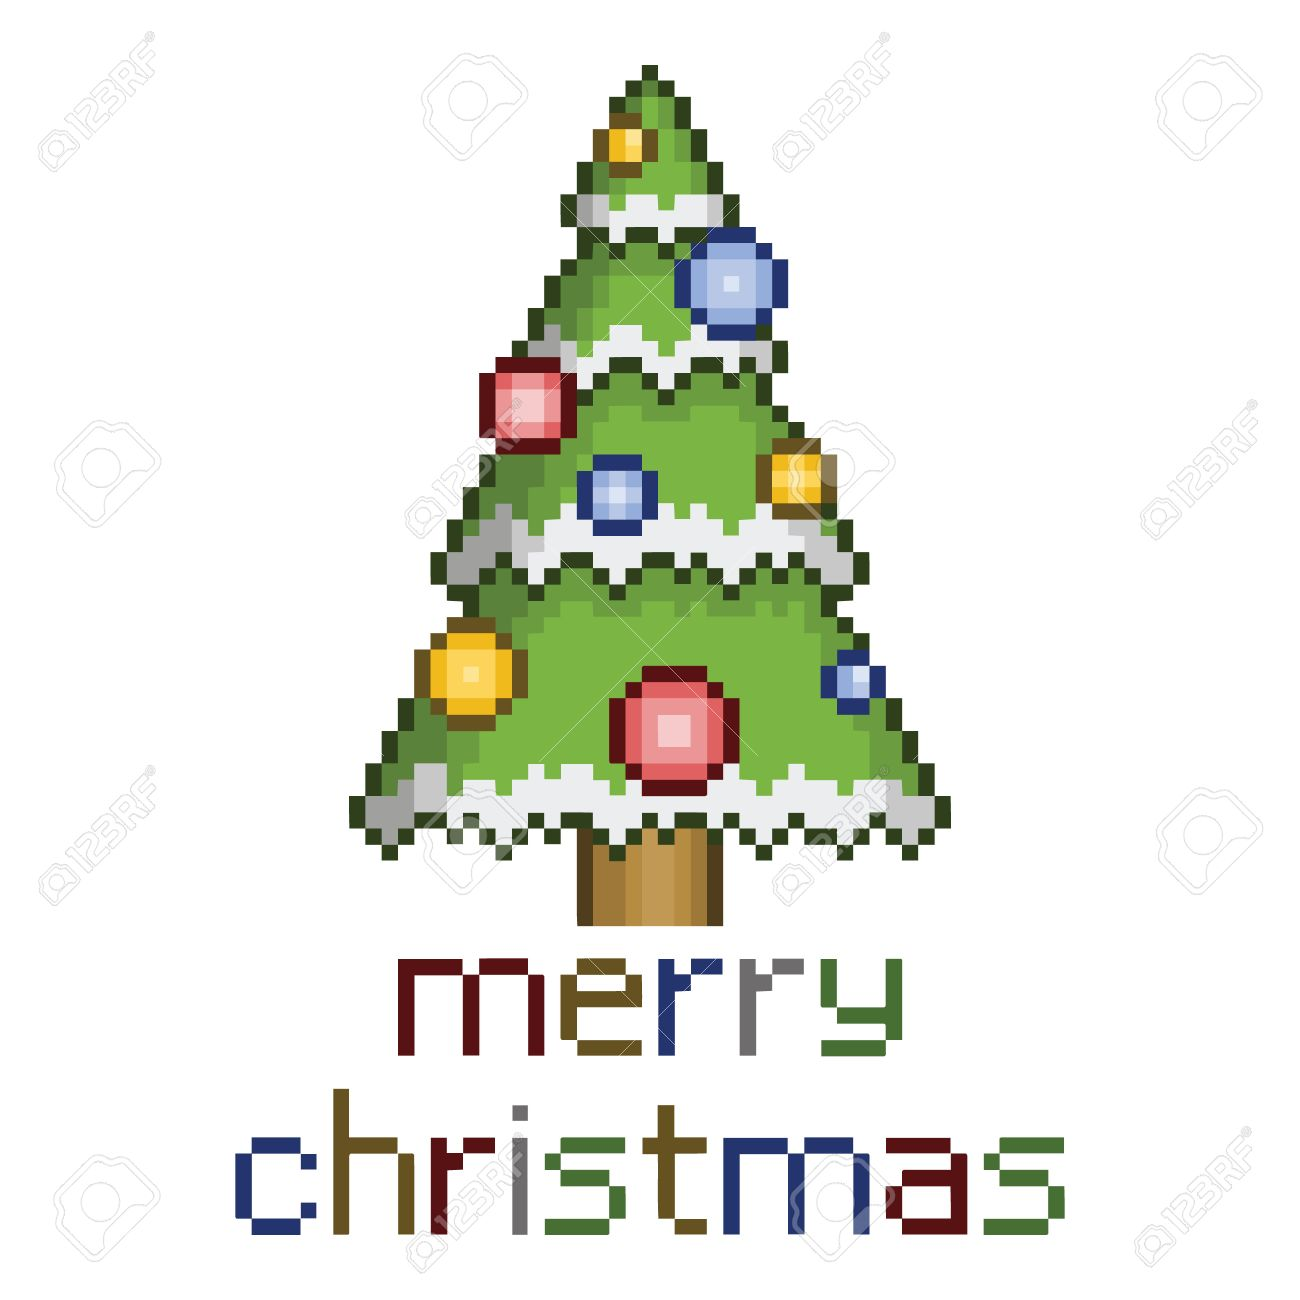 Pixel Art Christmas Tree With Ornaments For Design Royalty Free ...